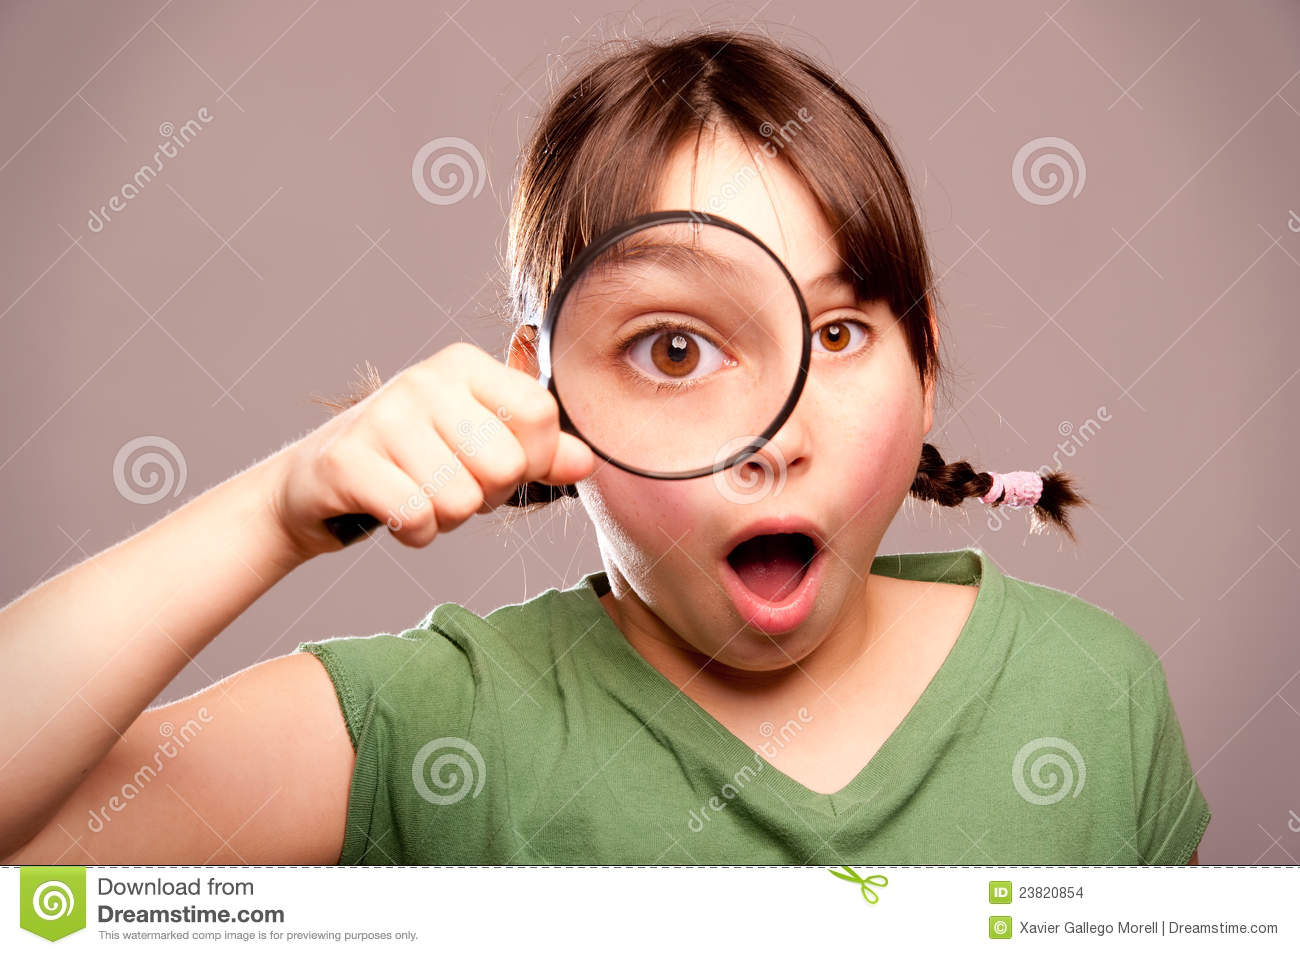 Looking Through Magnifying Glass Stock Images